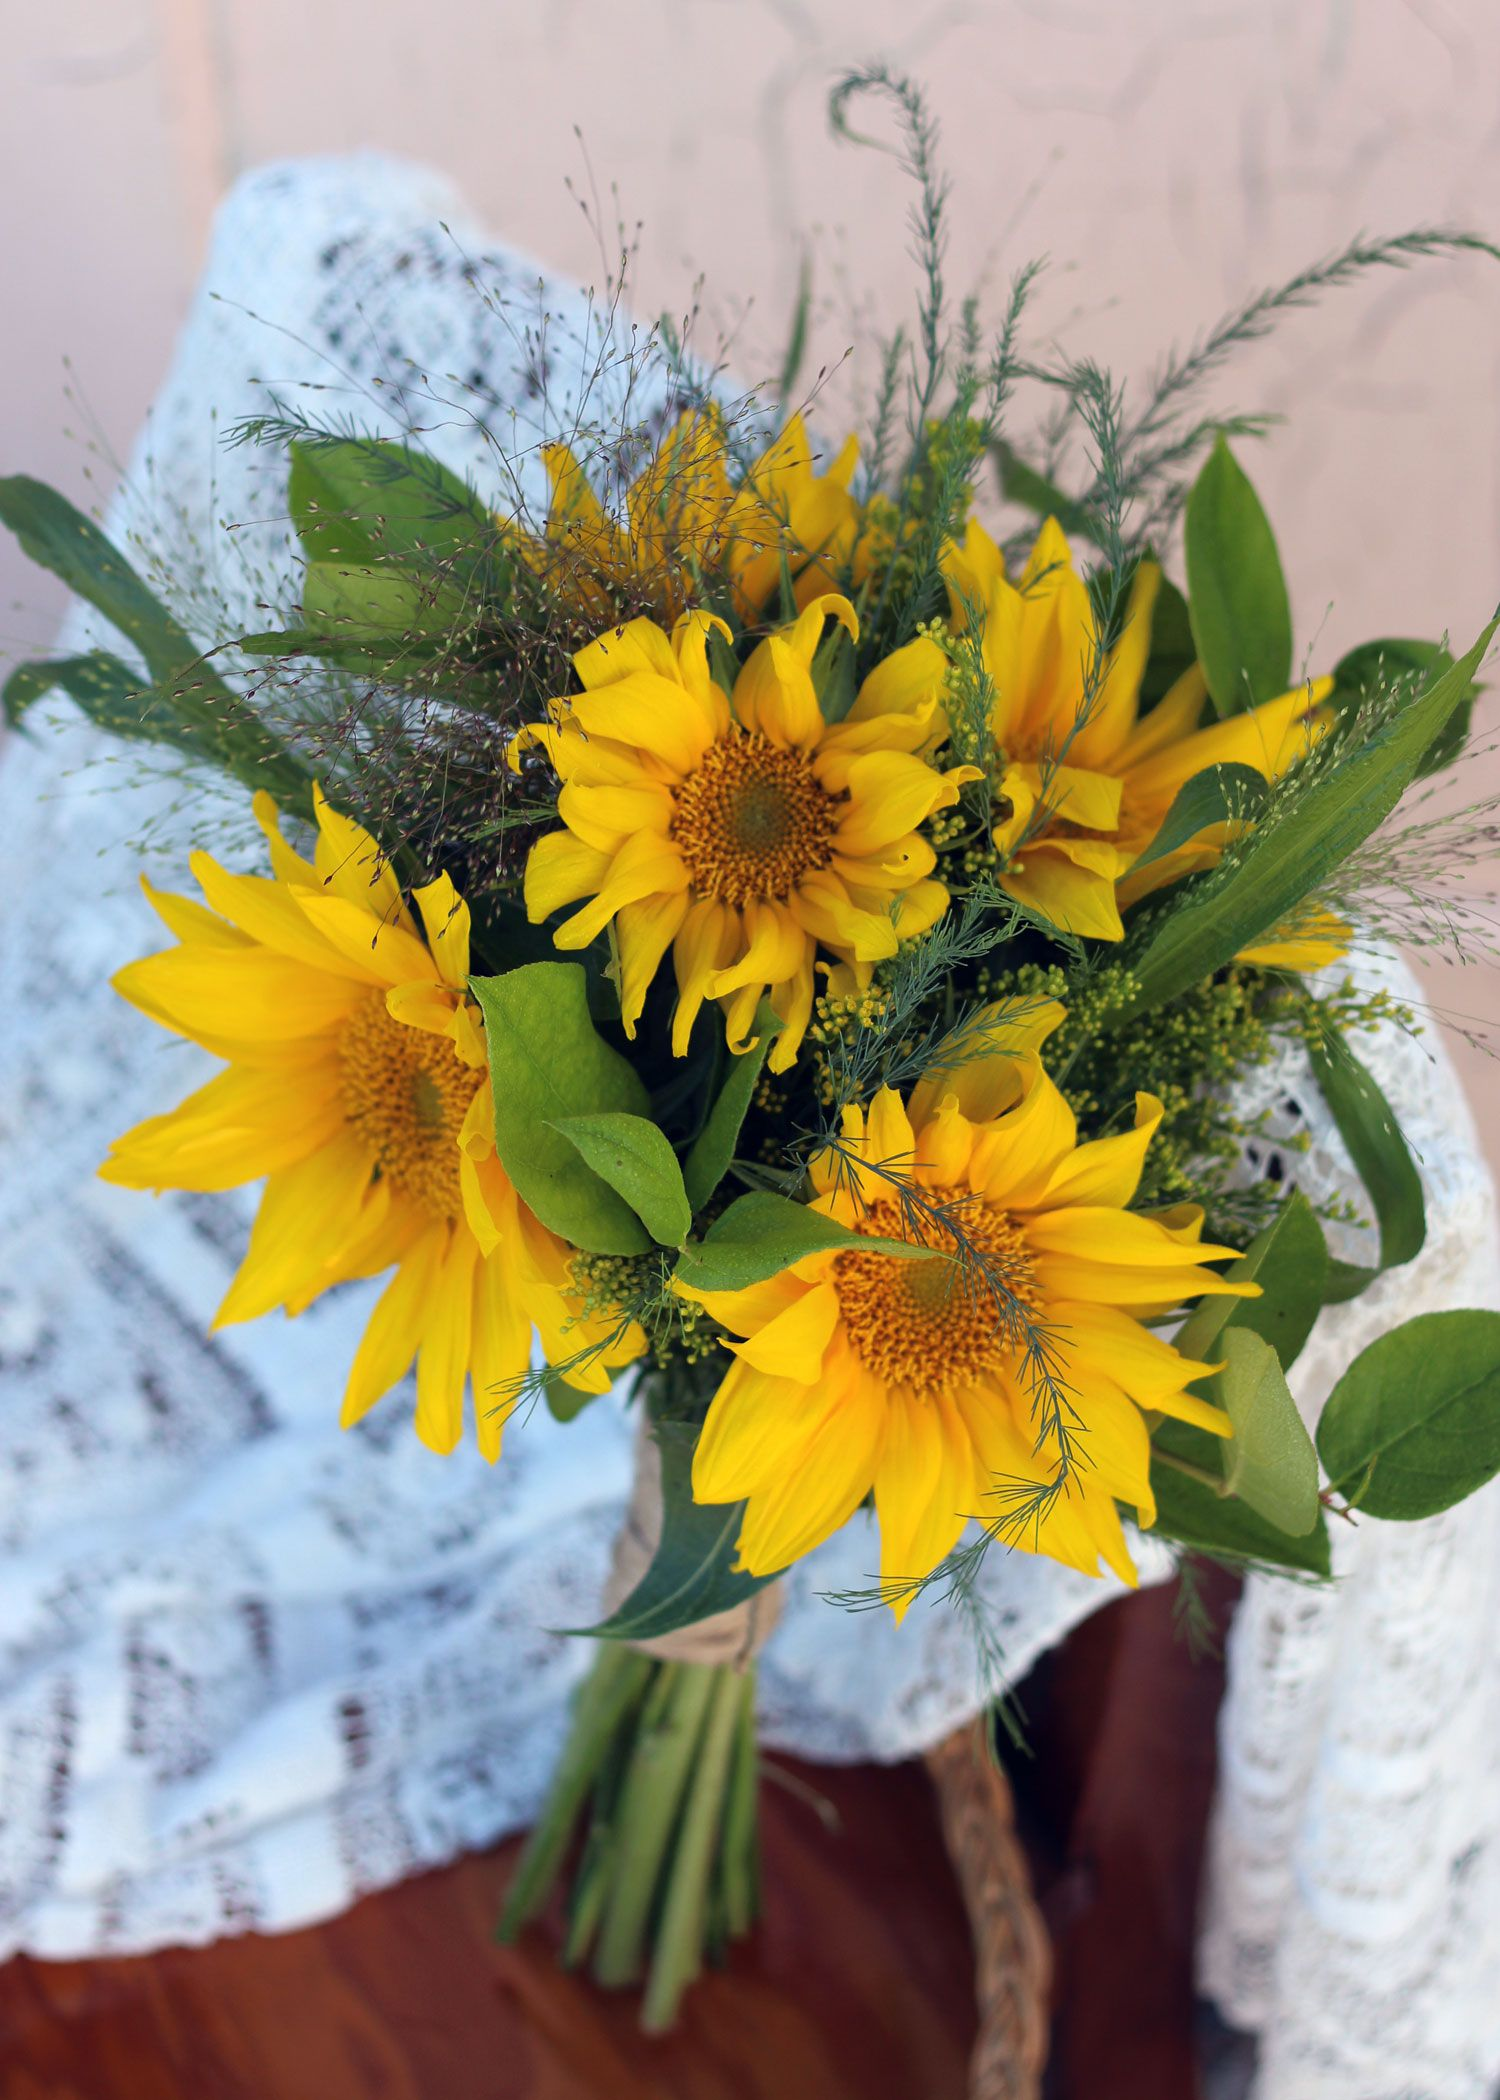 Late July. Bridesmaids Bouquet. Sunflowers with green ...